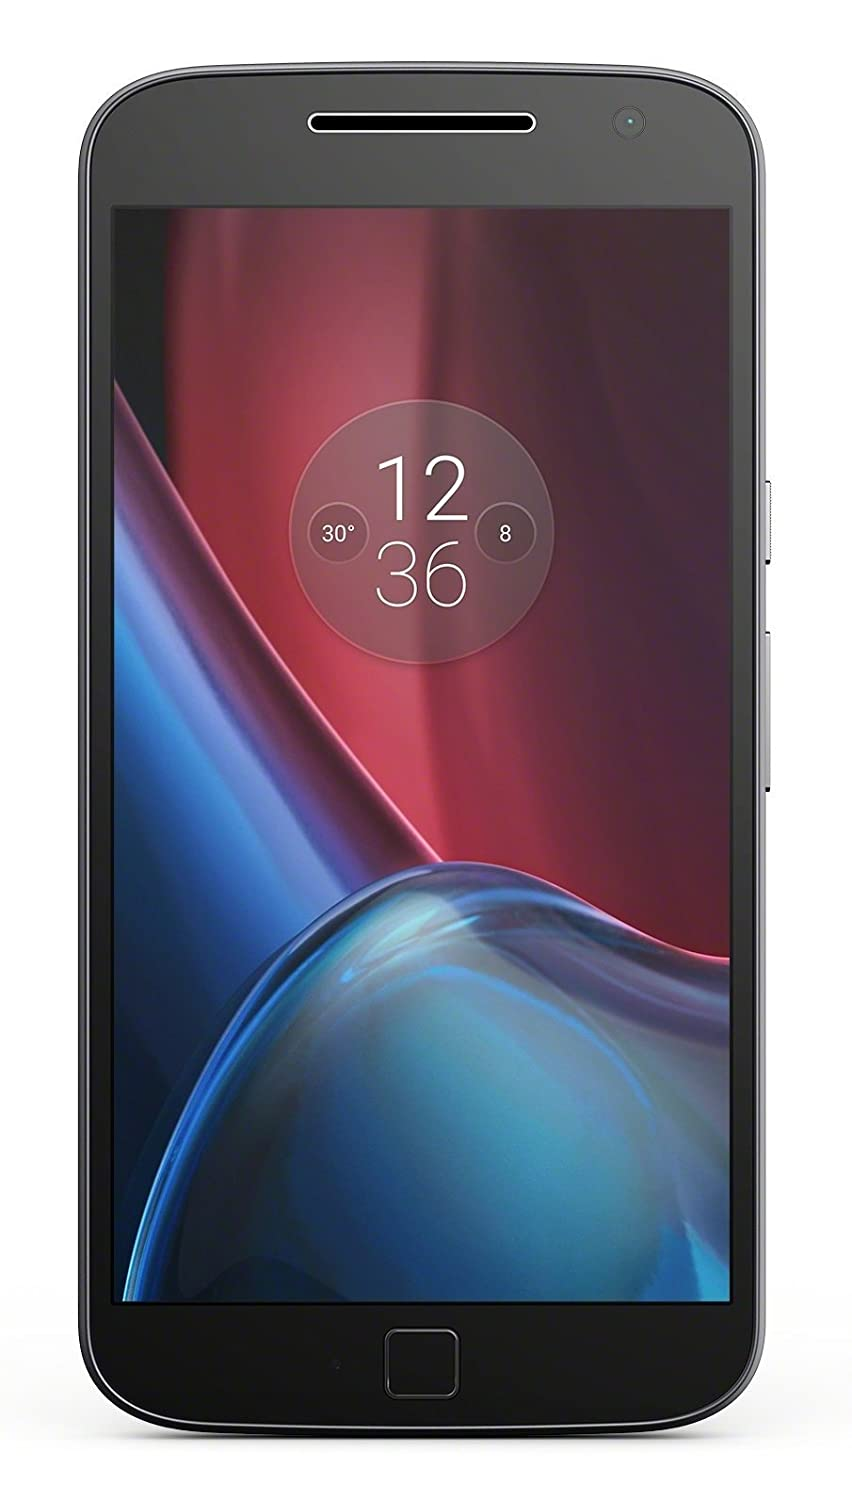 b11a8d6ea8e5c Moto G Plus, 4th Gen (Black, 32 GB) Price: Buy Motorola G4 Plus, Black, 32  GB Online at Best Price in India- Amazon.in